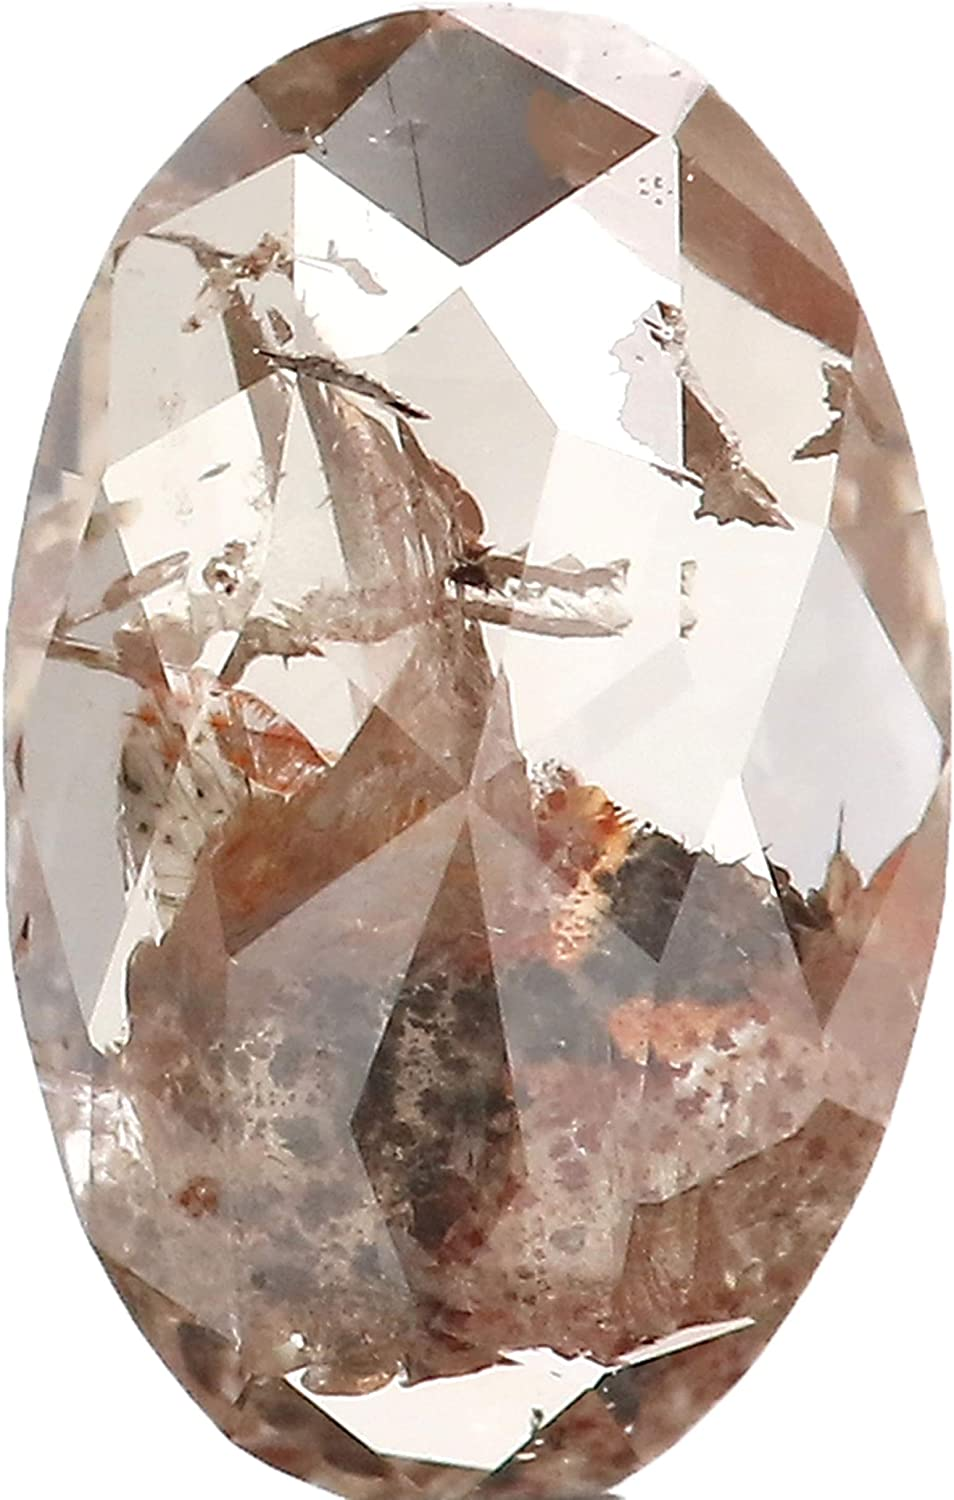 0.58 CT Natural Loose Diamond Oval Brown Color Bargain Grey New arrival 6.85 MM L923